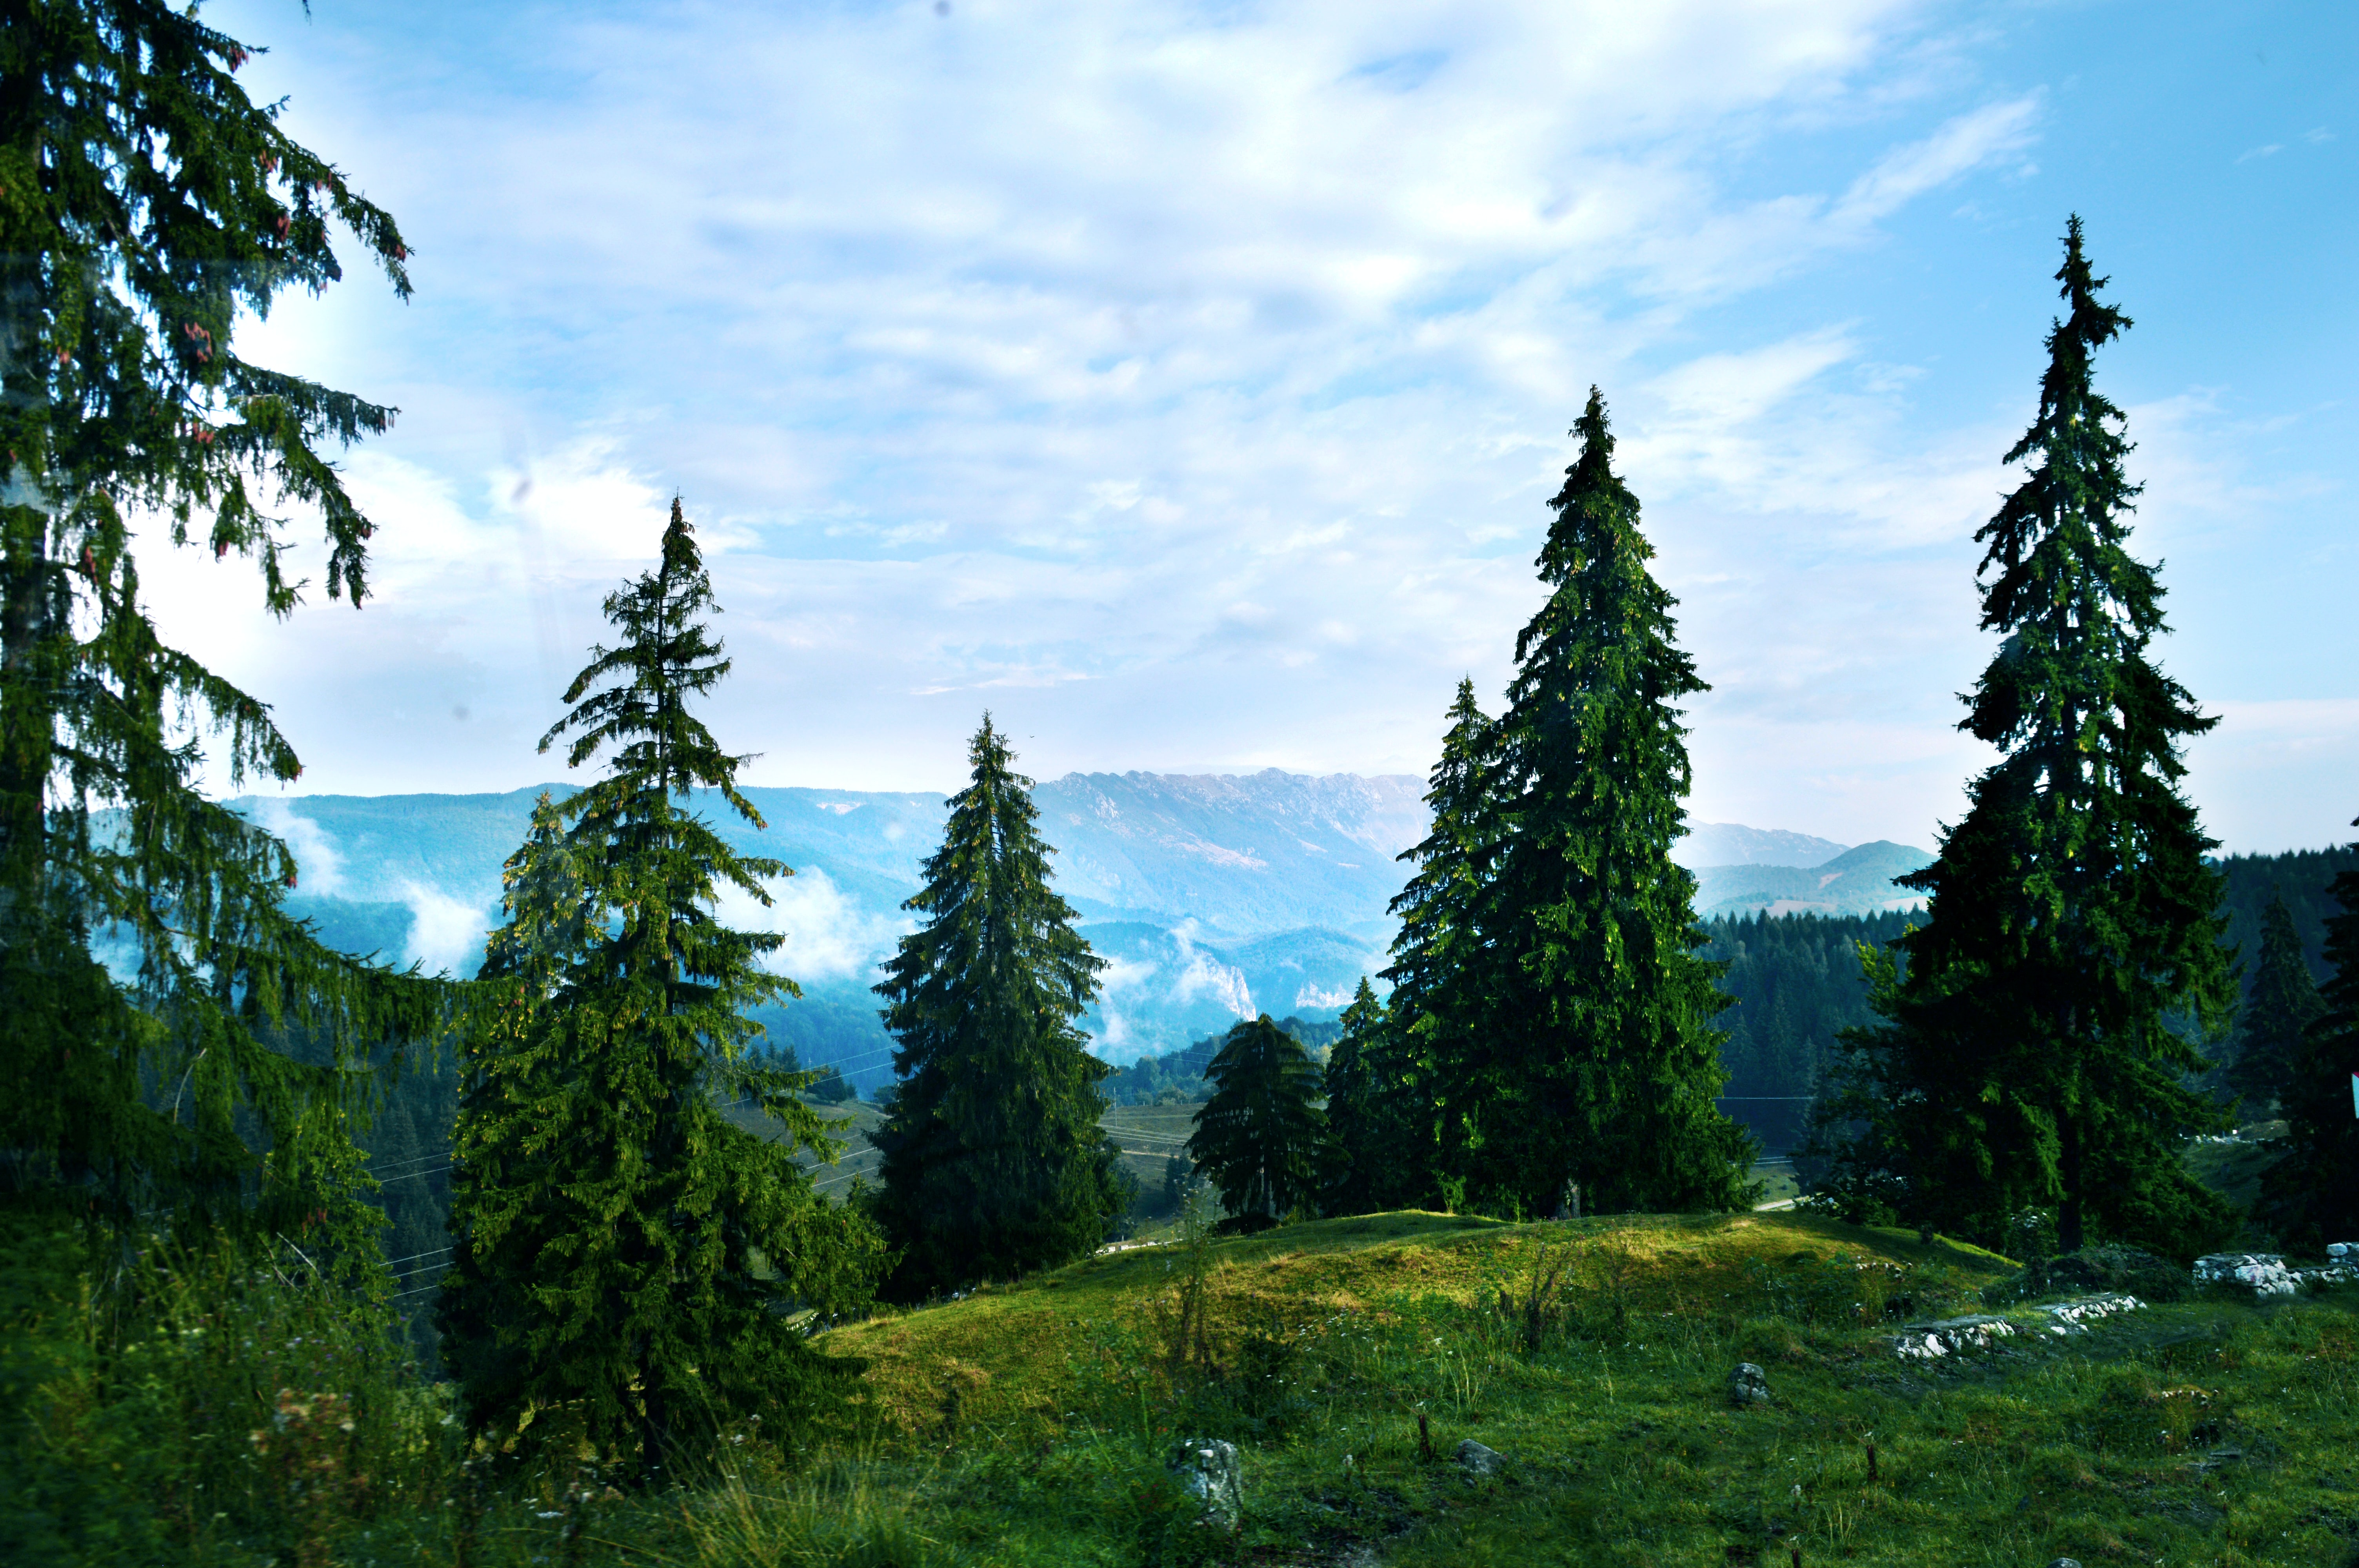 landscape photography of green trees